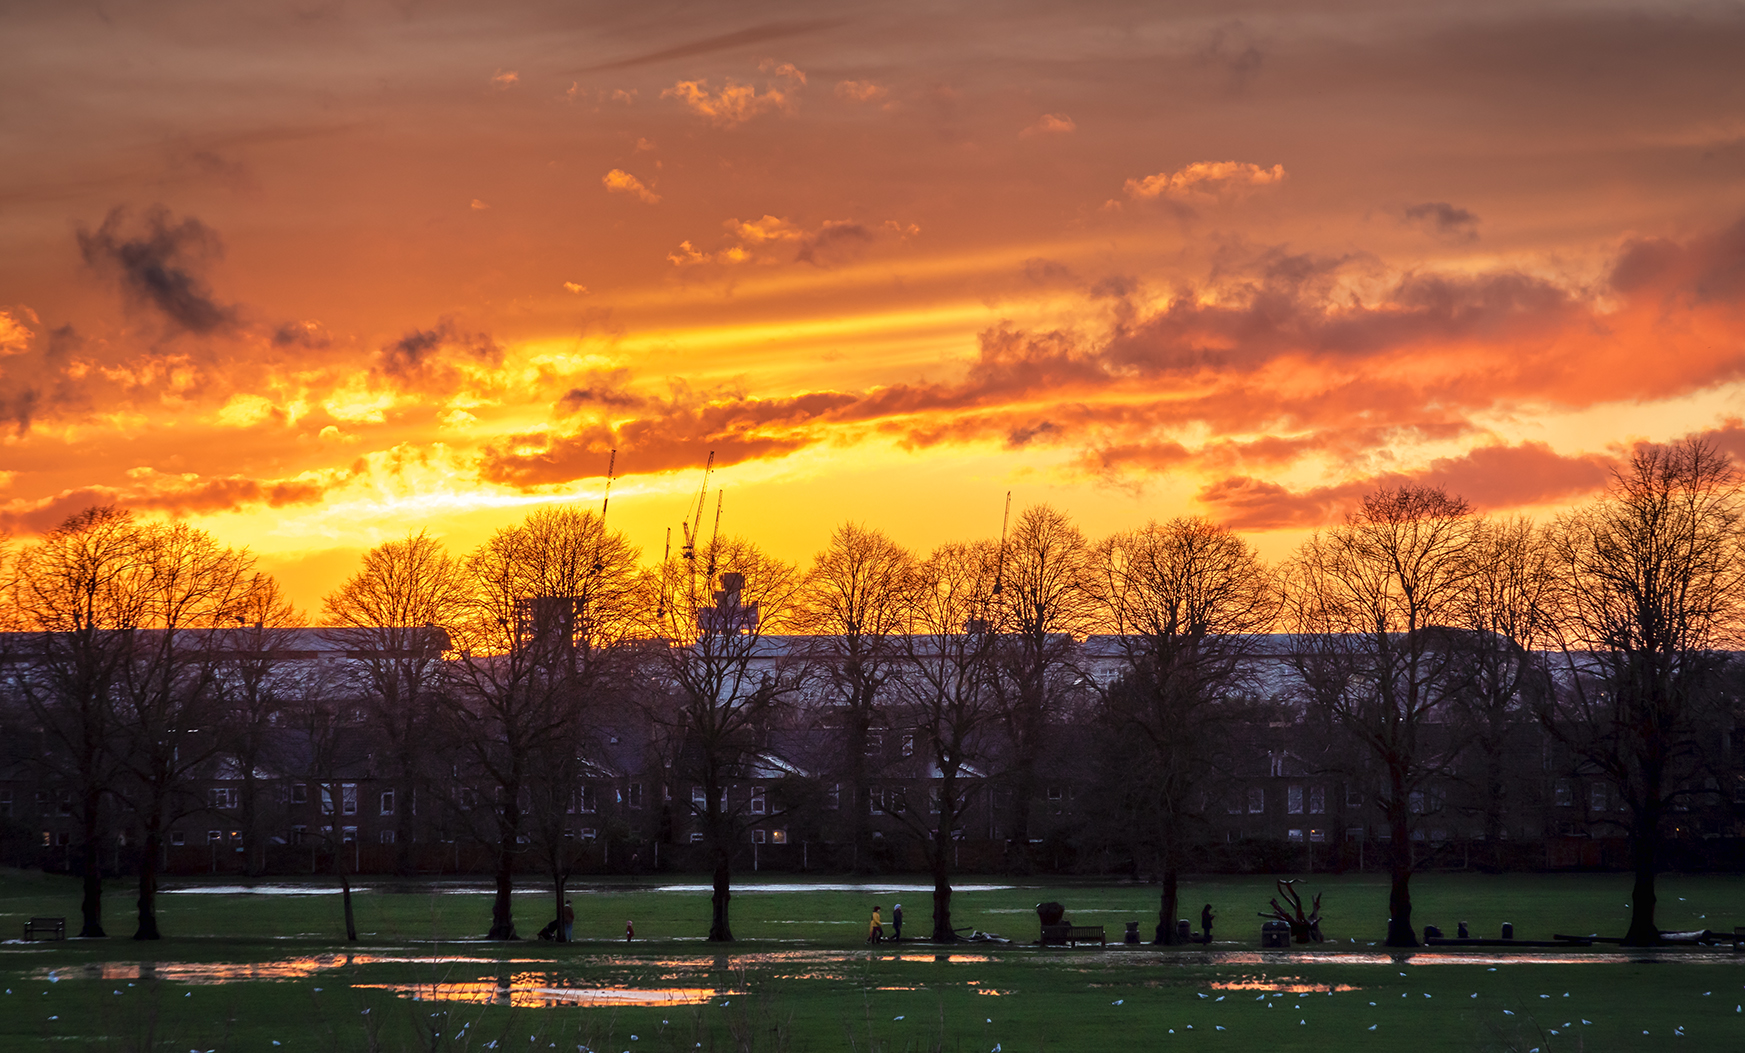 Sunset in Waltham Forest